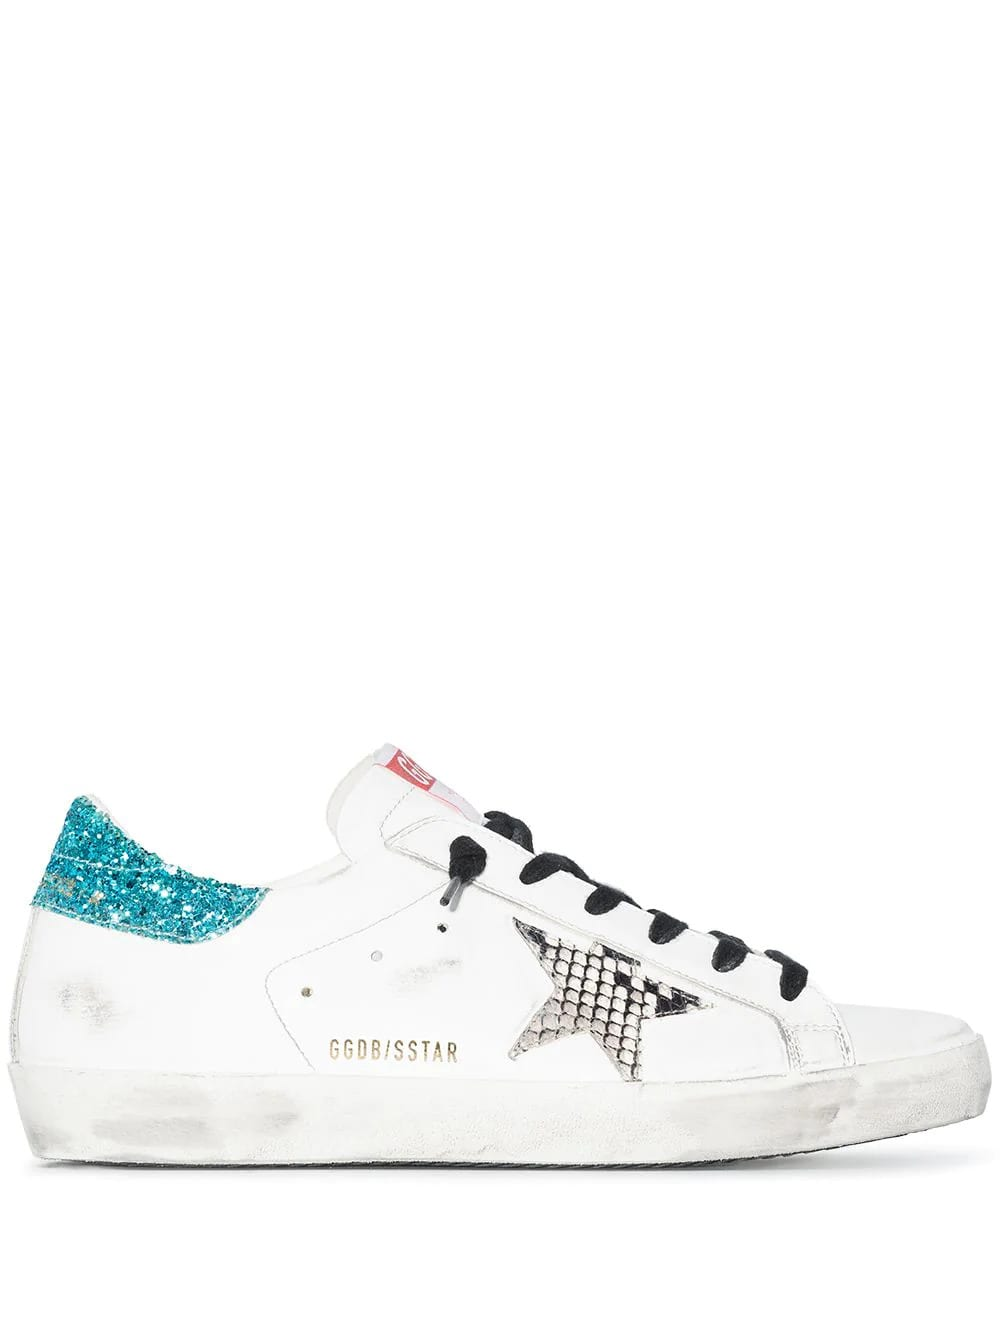 Golden Goose Woman White Super-star Sneakers With Black Laces, Python Printed Star And Aquamarine Glittered Spoiler